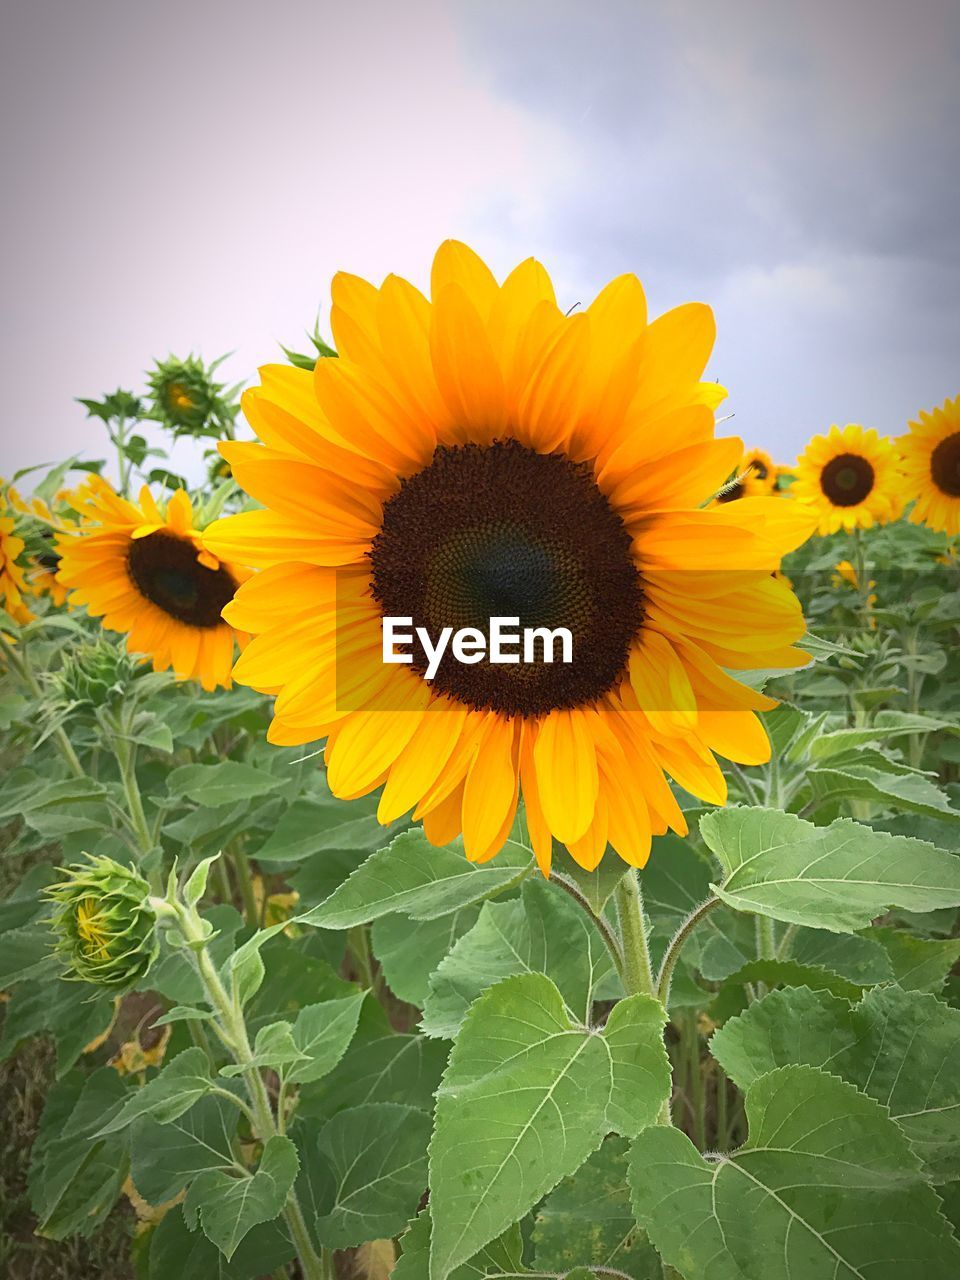 flower, yellow, plant, nature, petal, fragility, sunflower, growth, freshness, beauty in nature, flower head, leaf, botany, no people, field, outdoors, day, close-up, blooming, springtime, sky